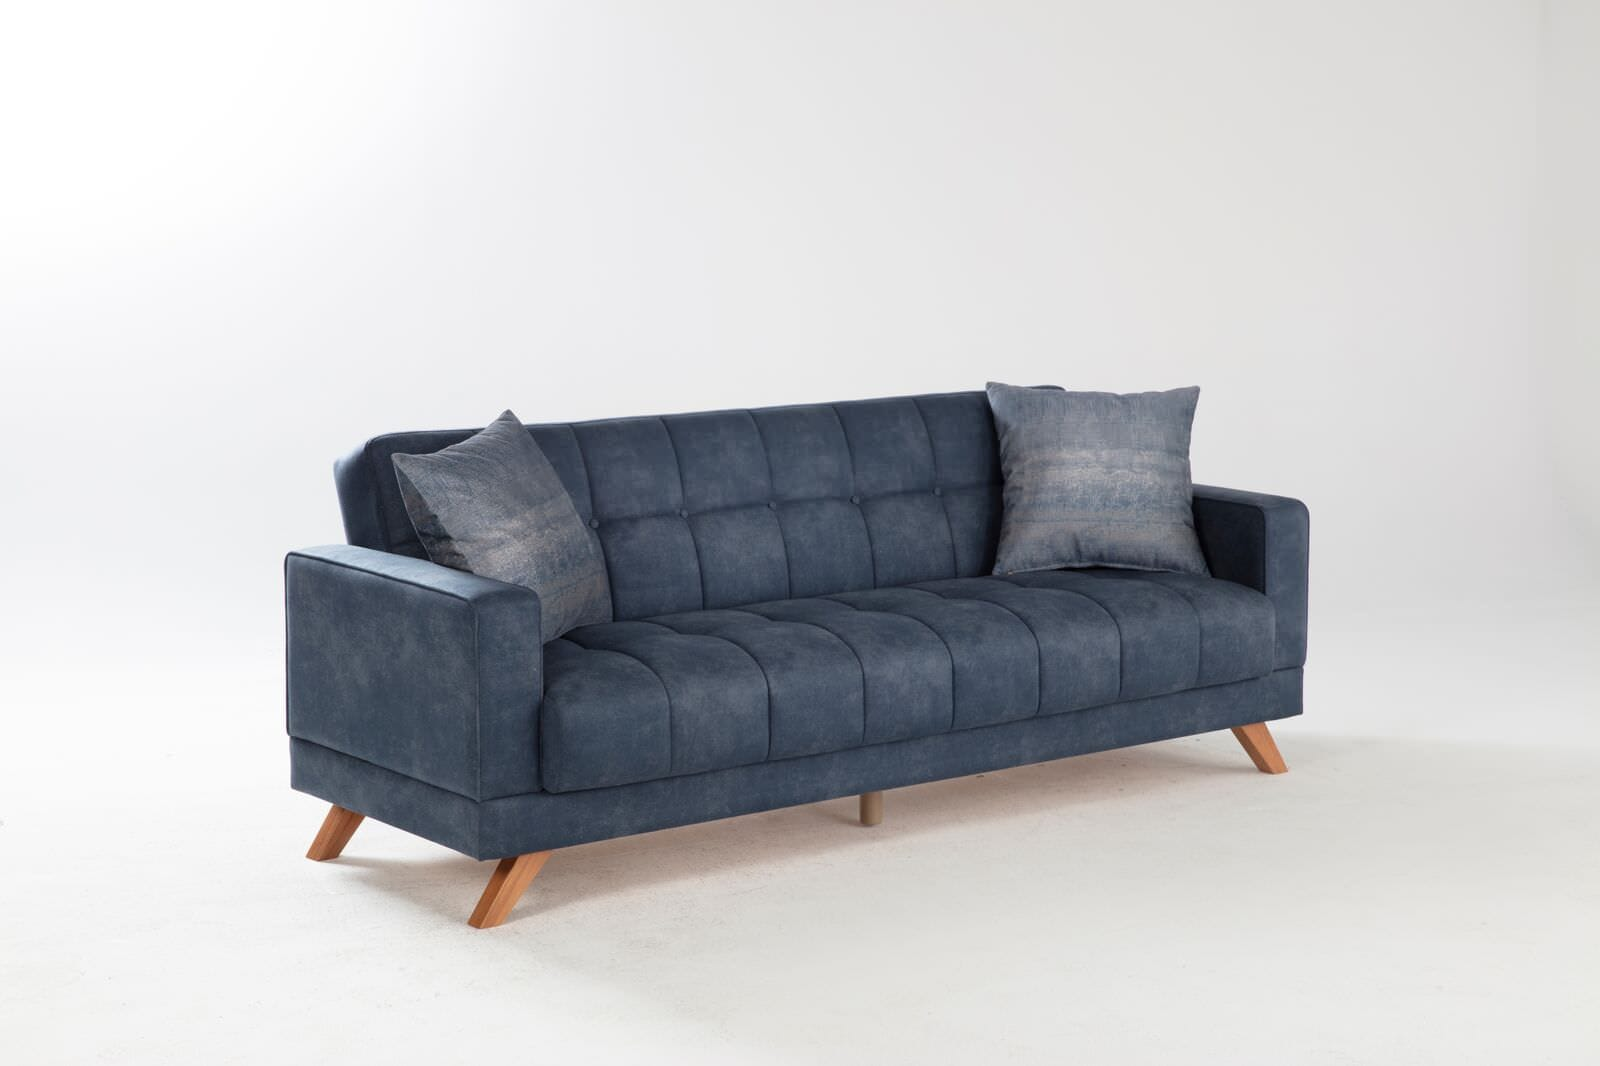 Montana Yakut Navy Convertible Sofa Bed by Istikbal Furniture